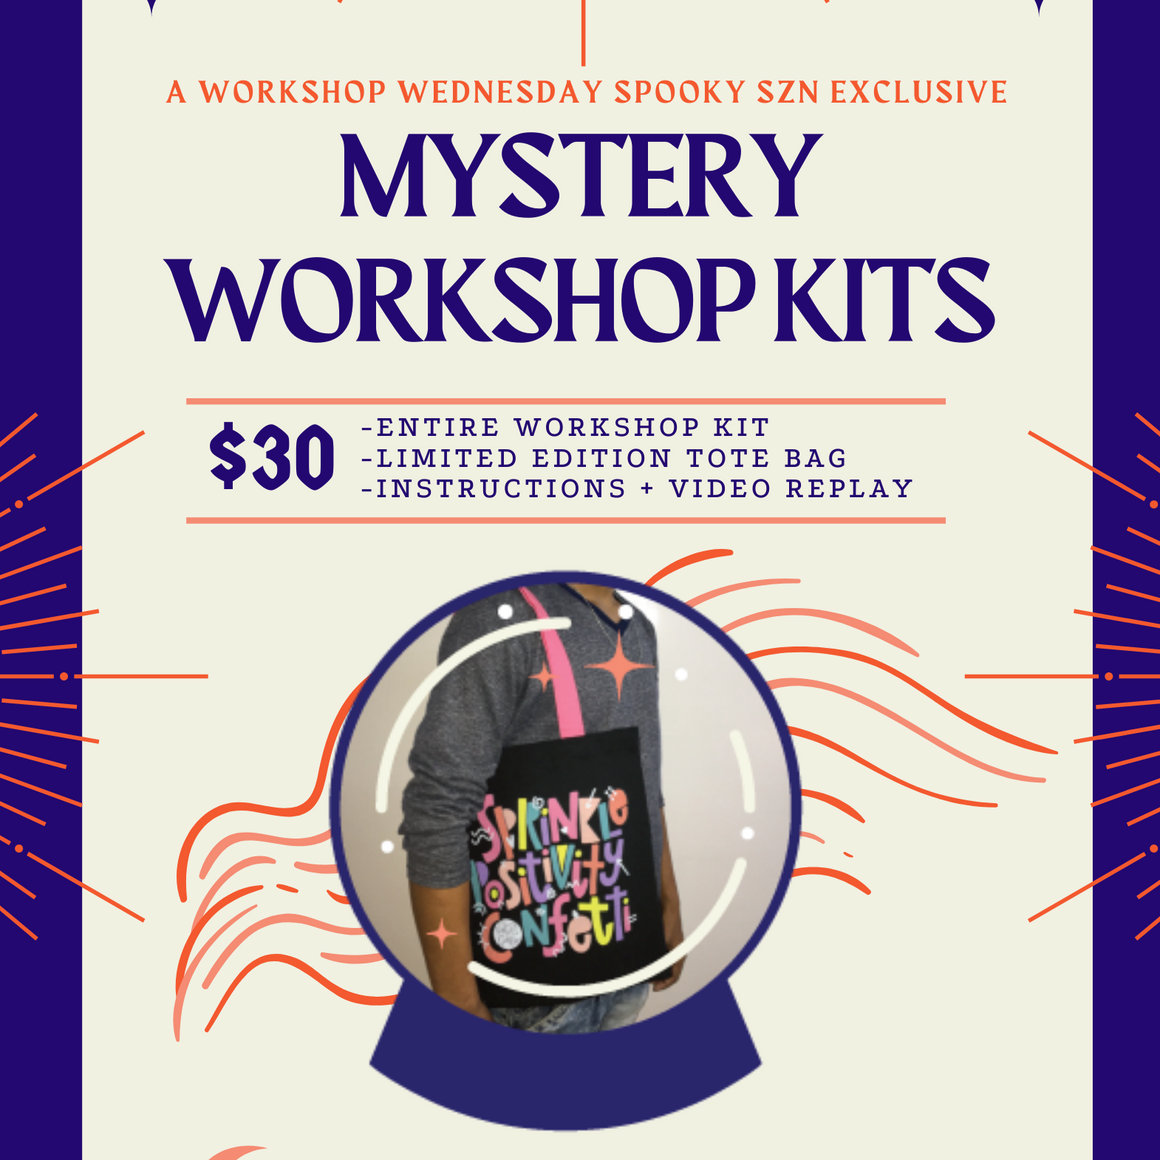 Mystery DIY Workshop Kit + Limited Edition Tote